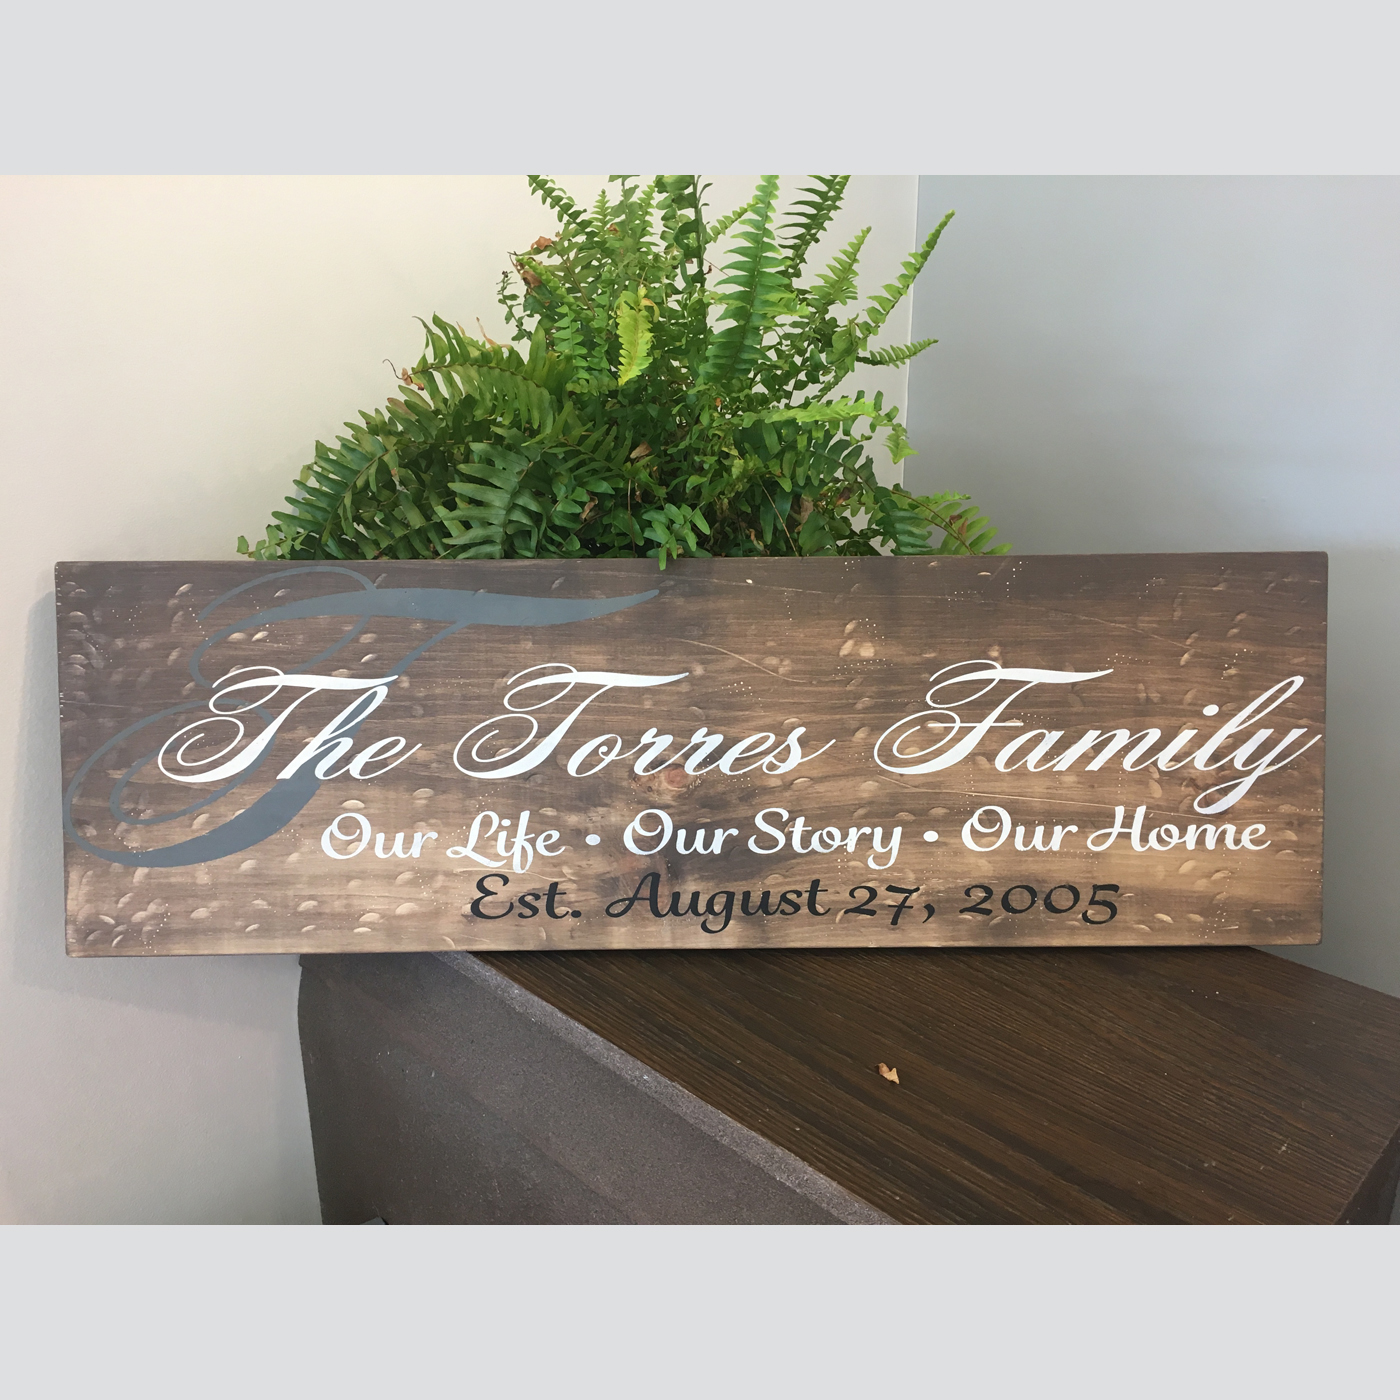 Scripted Monogram- Our Life, Our Story, Our Home DIY Wood Sign Project Family